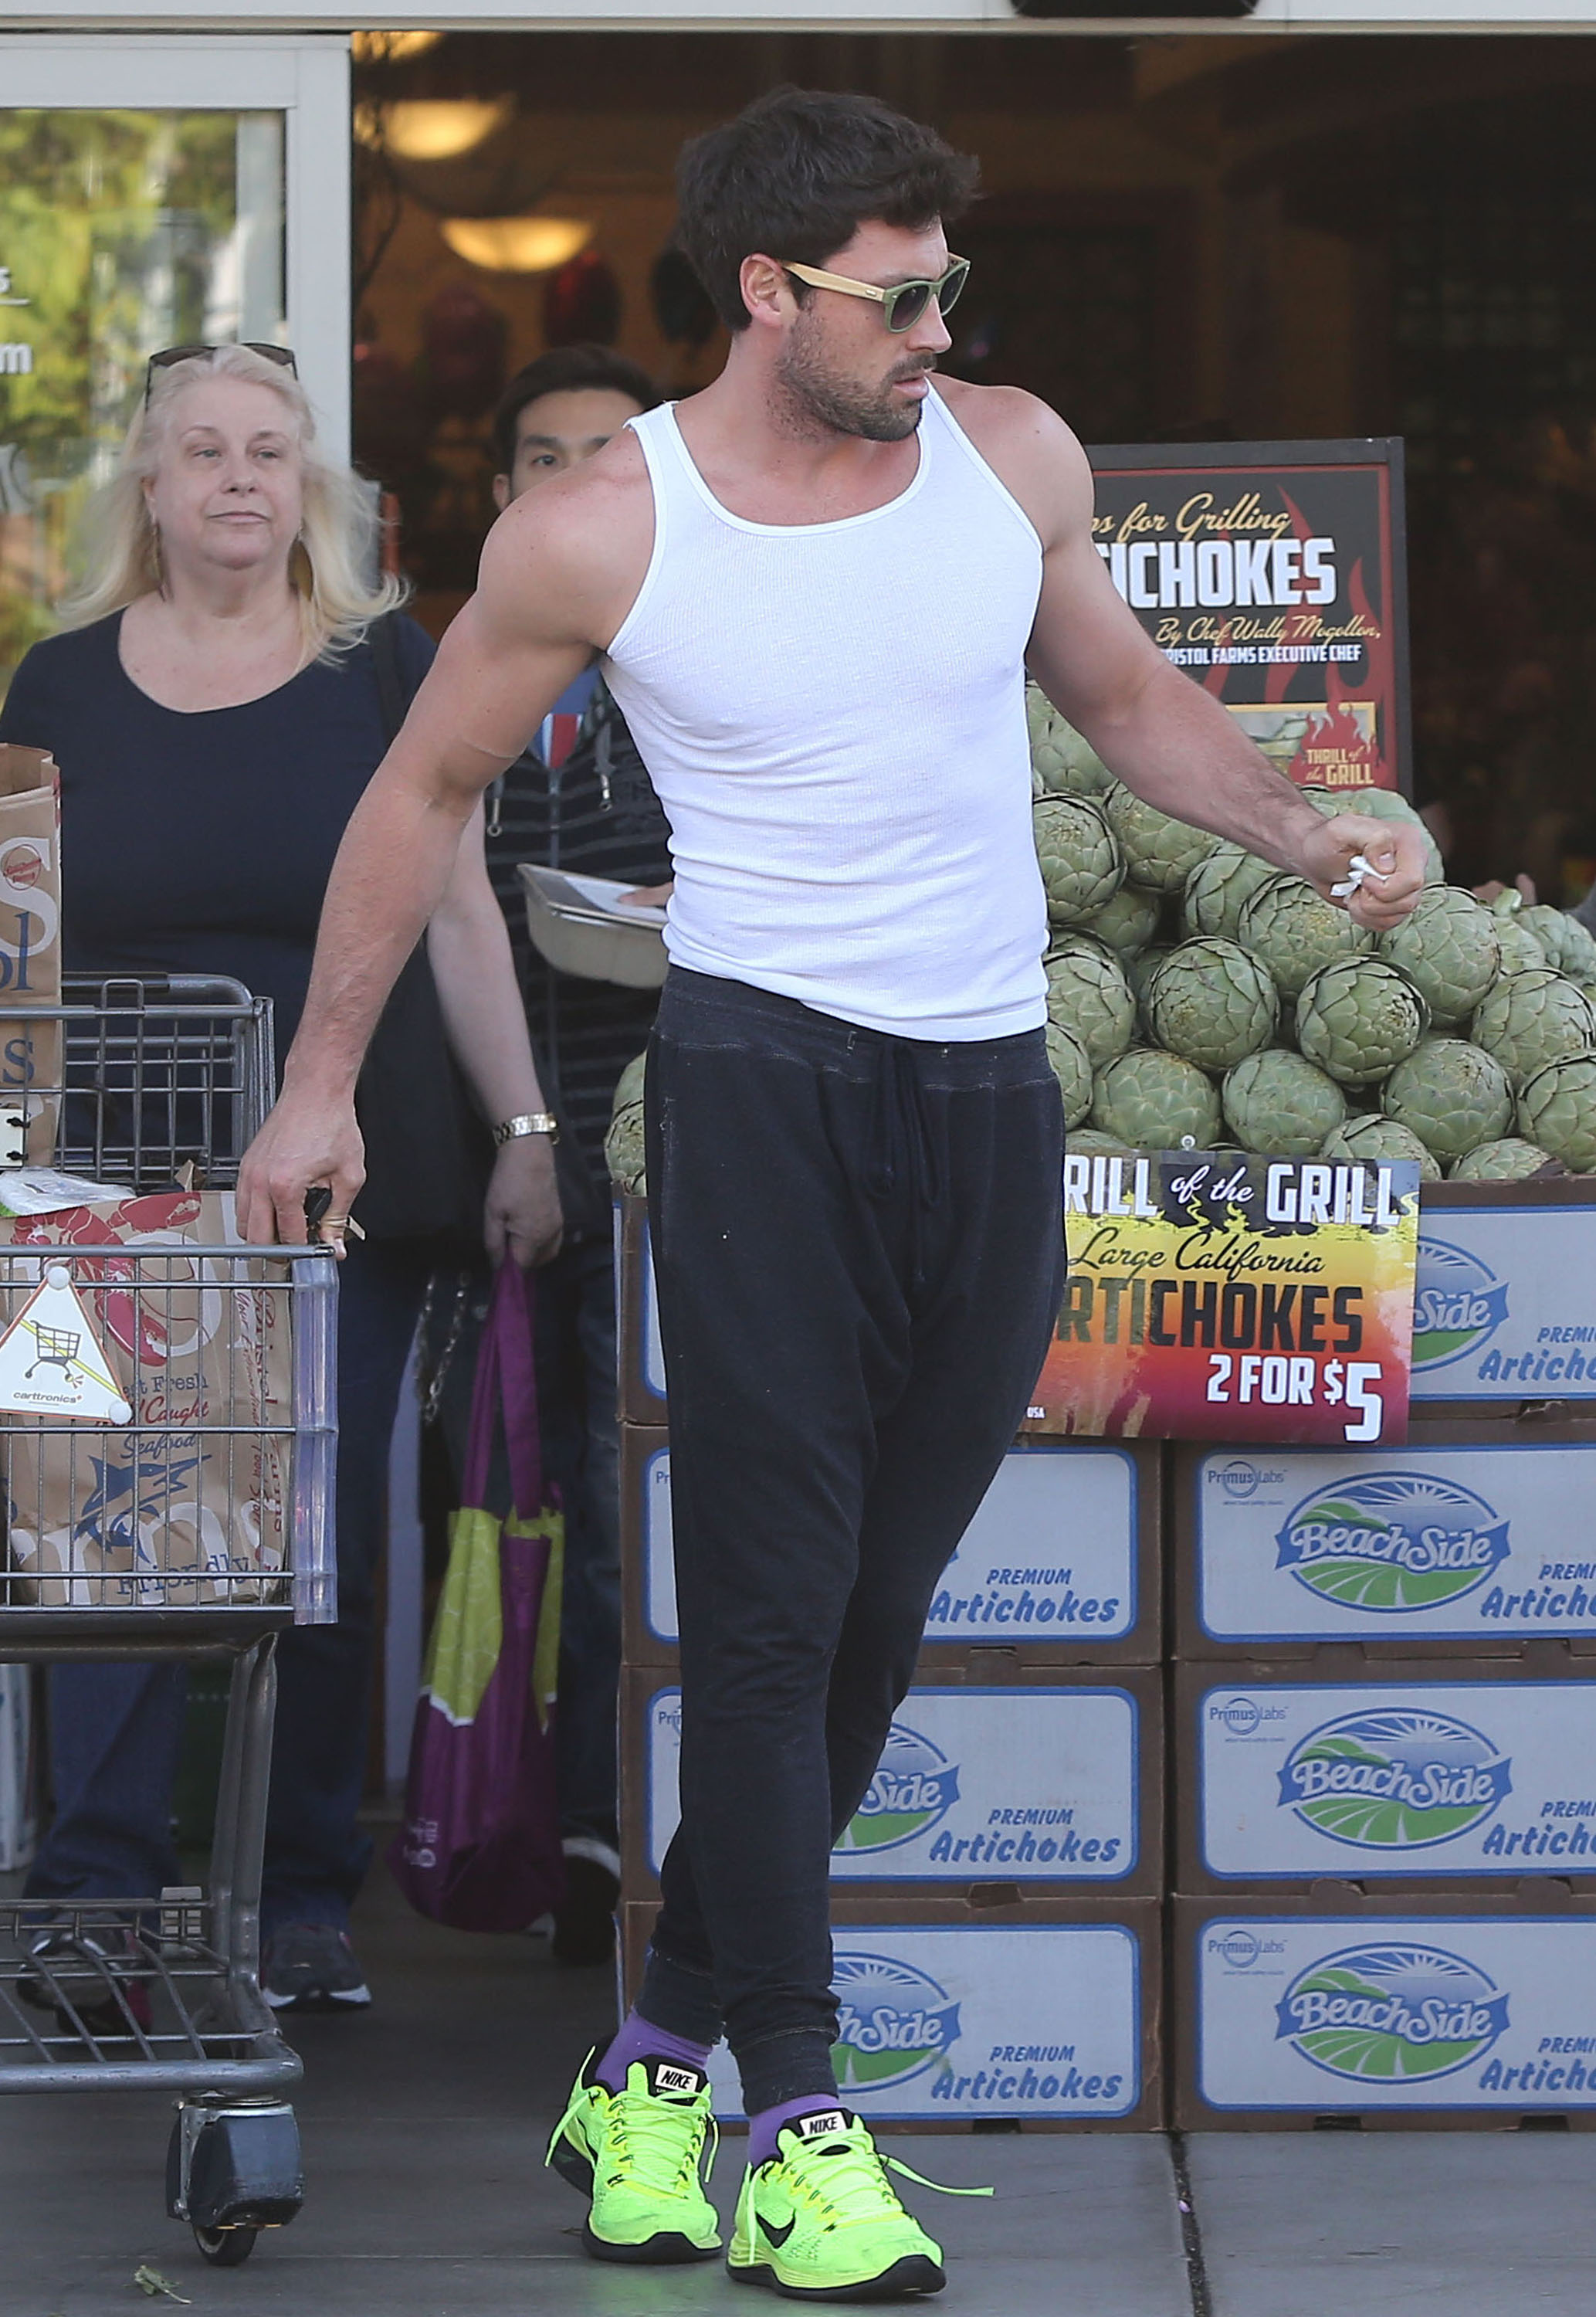 DWTS Maks Chmerkovskiy and Peta Murgatroyd Kicked Out of Lamaze Class